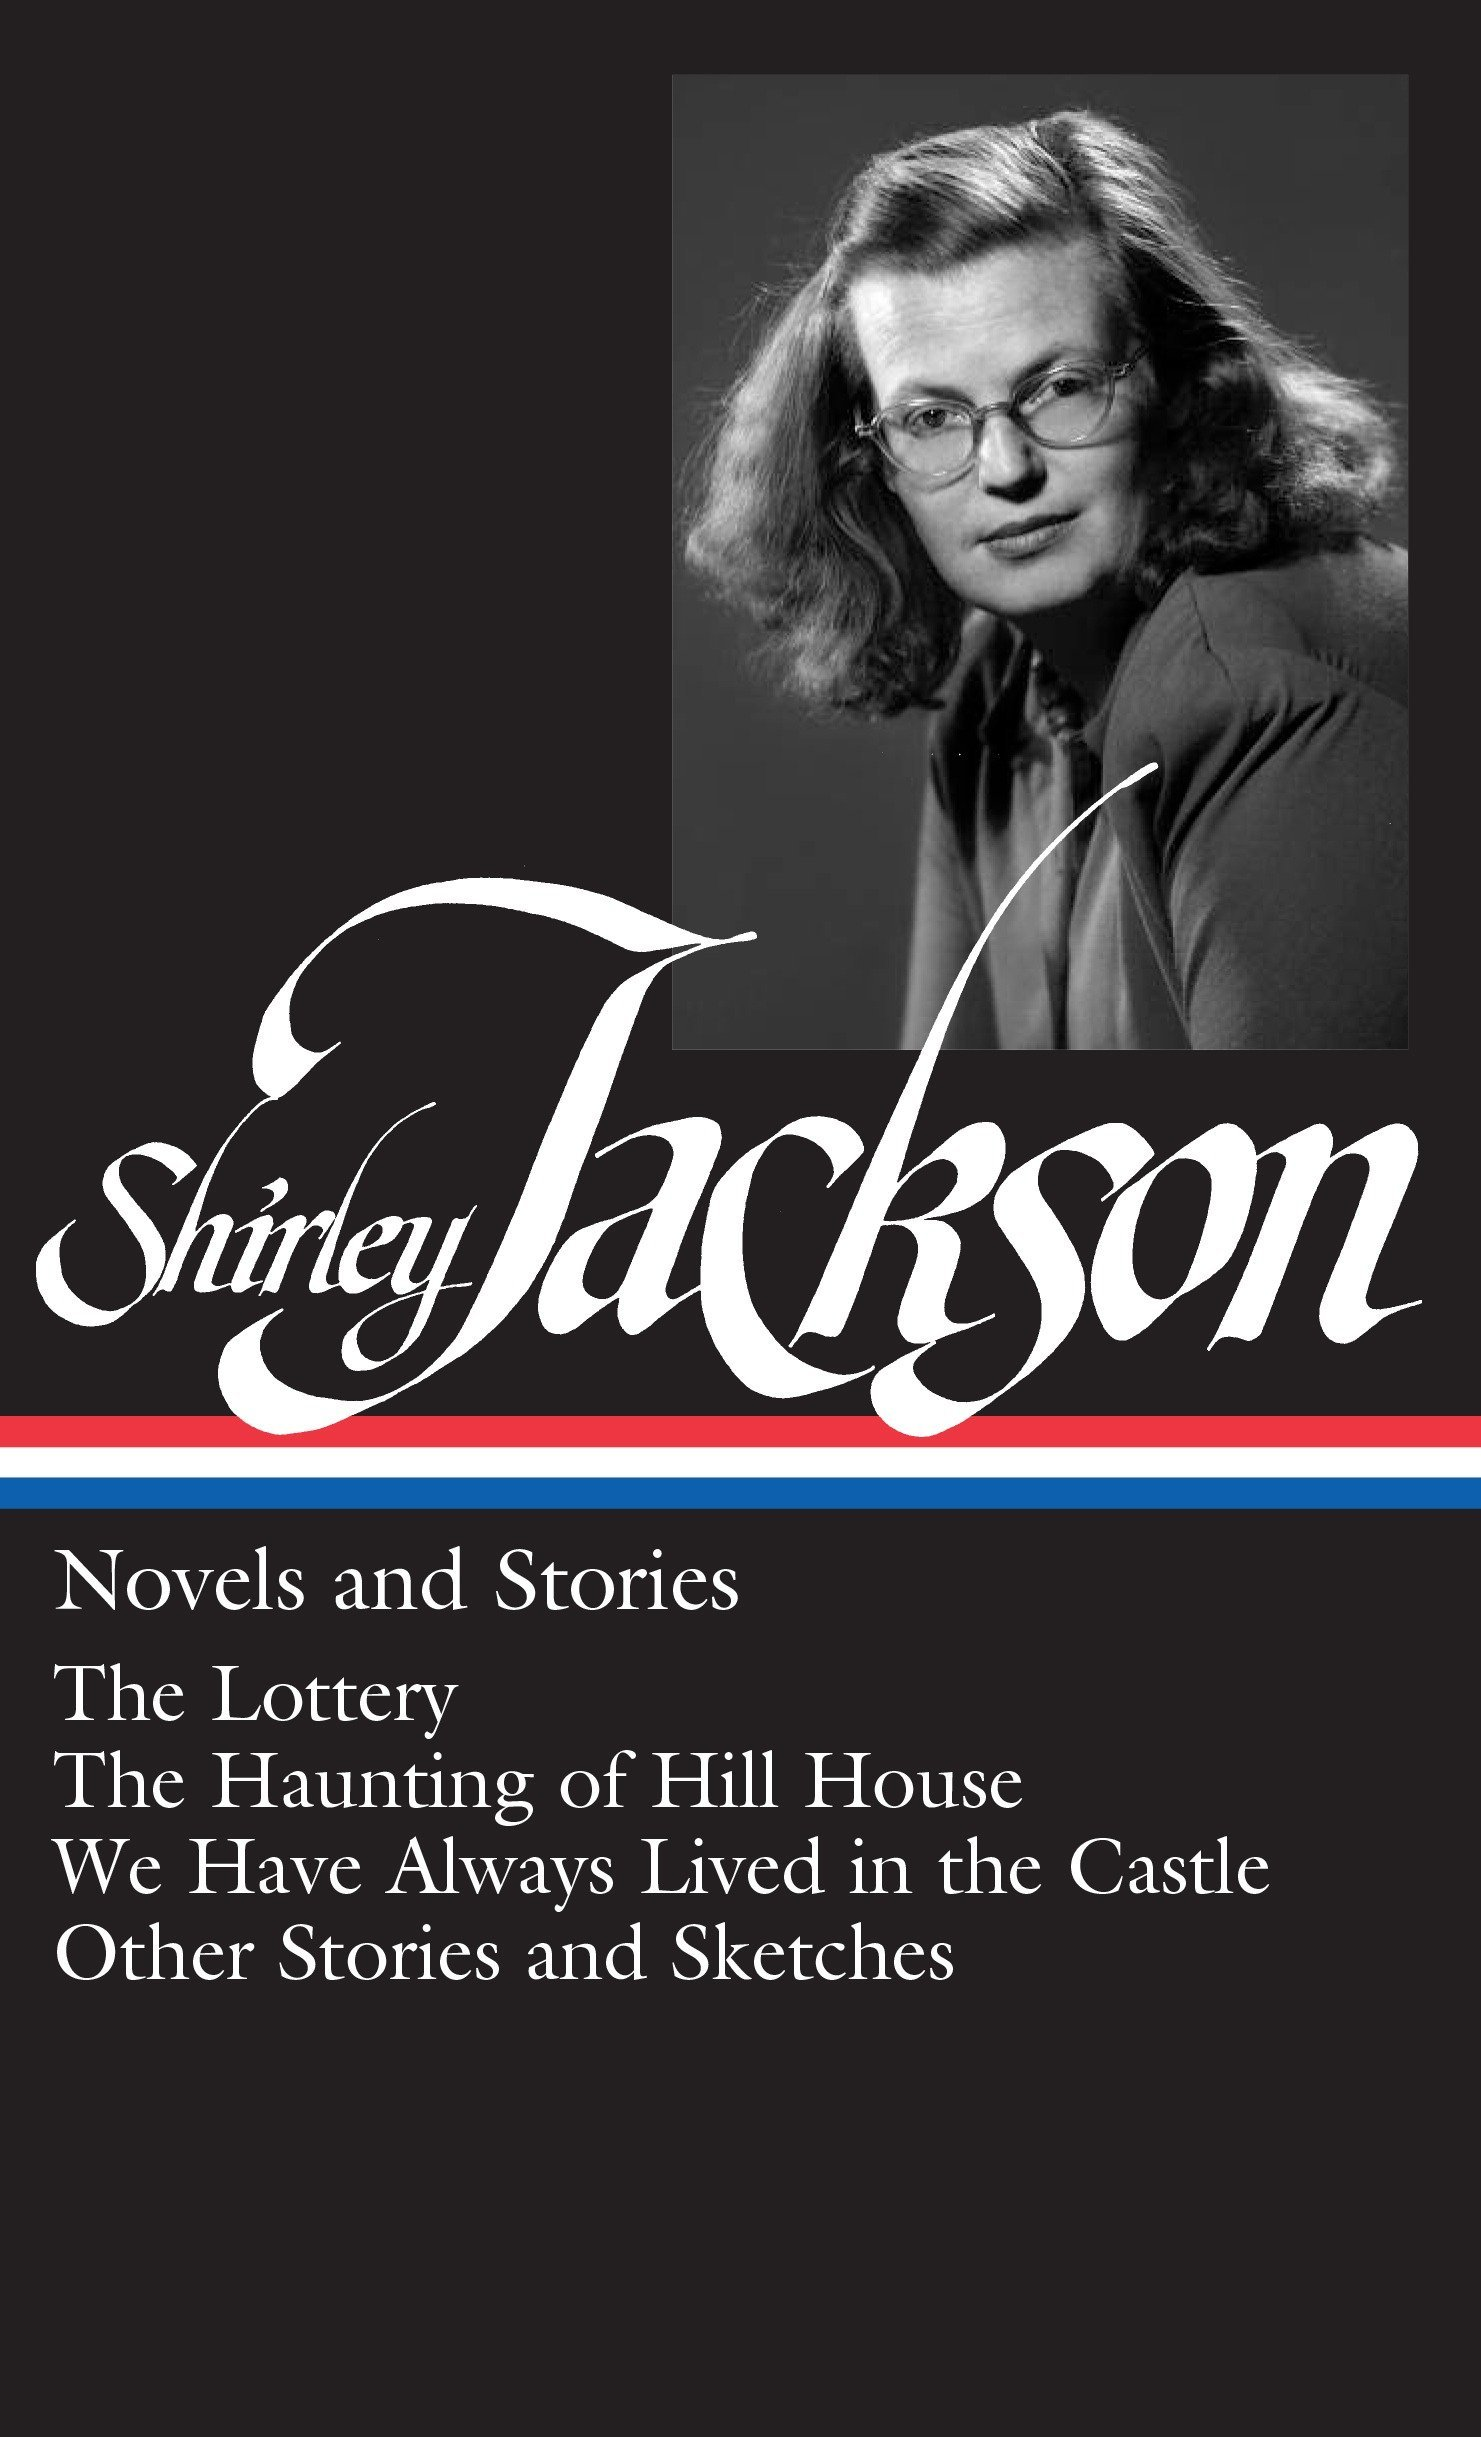 Shirley Jackson Novels And Stories The Lottery The Haunting Of Hill House We Have Always Lived In The Castle Jackson Shirley Oates Joyce Carol 9781598530728 Amazon Com Books